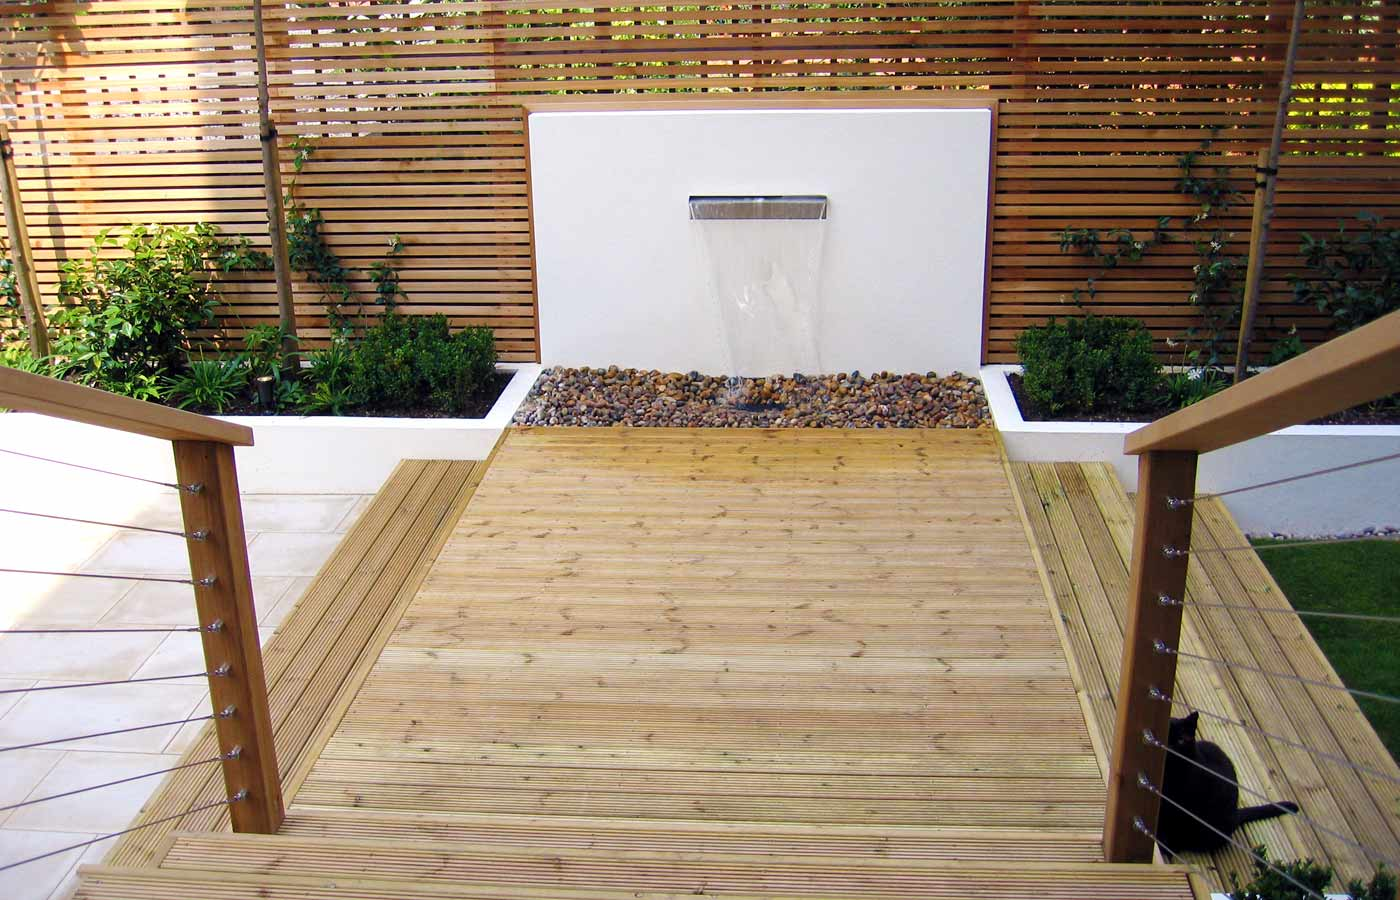 Contemporary garden design london architectural garden for Garden decking ideas uk